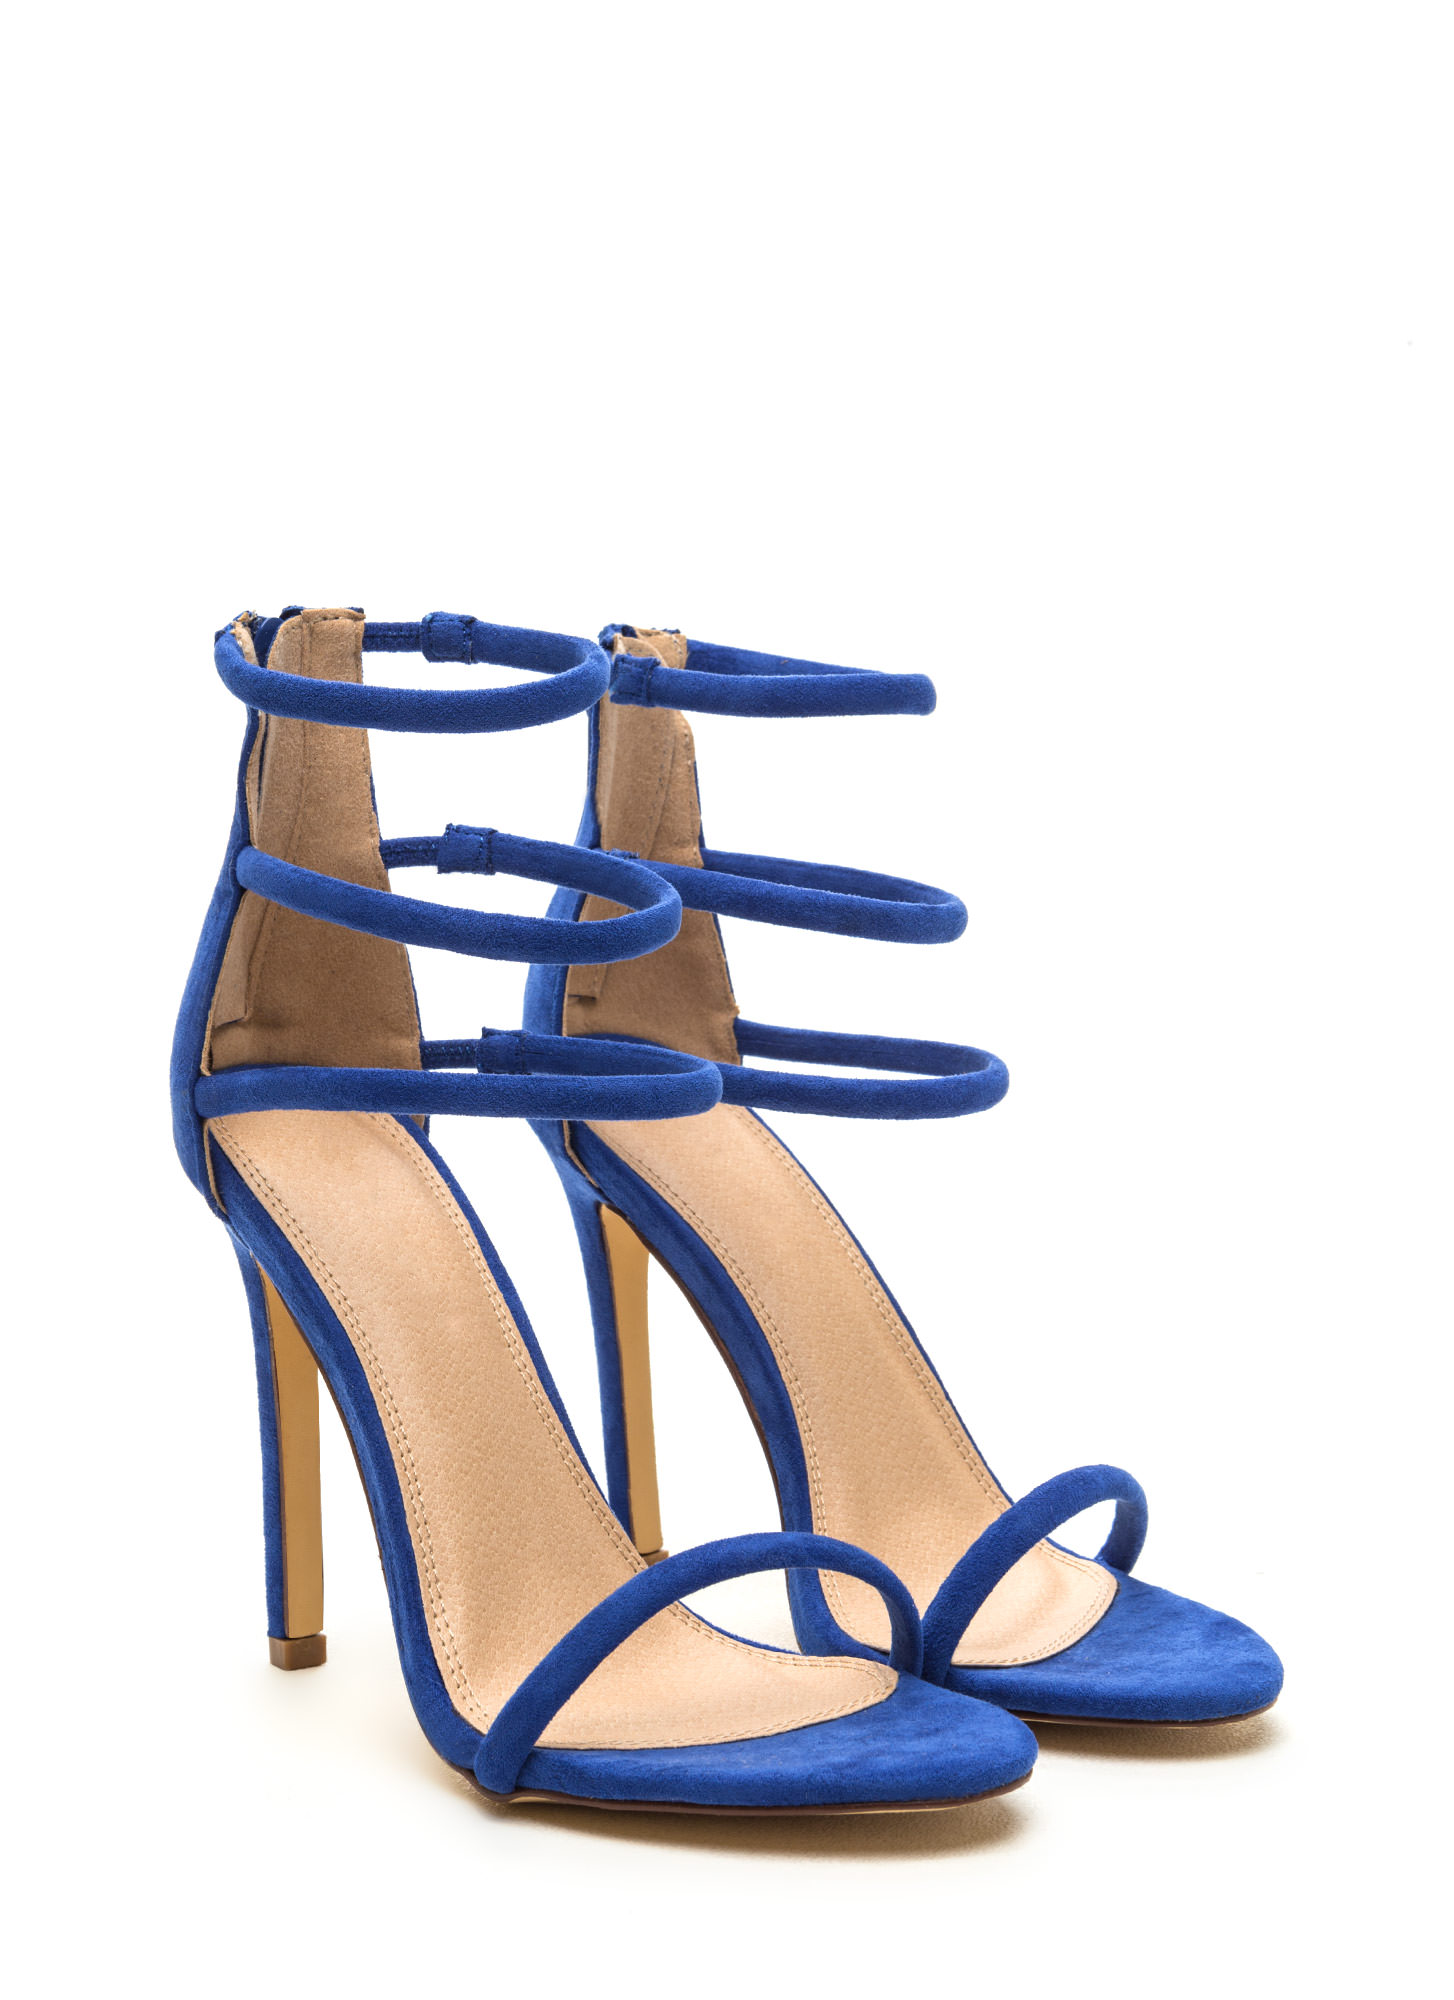 Total Triple Threat Strappy Heels BLUE